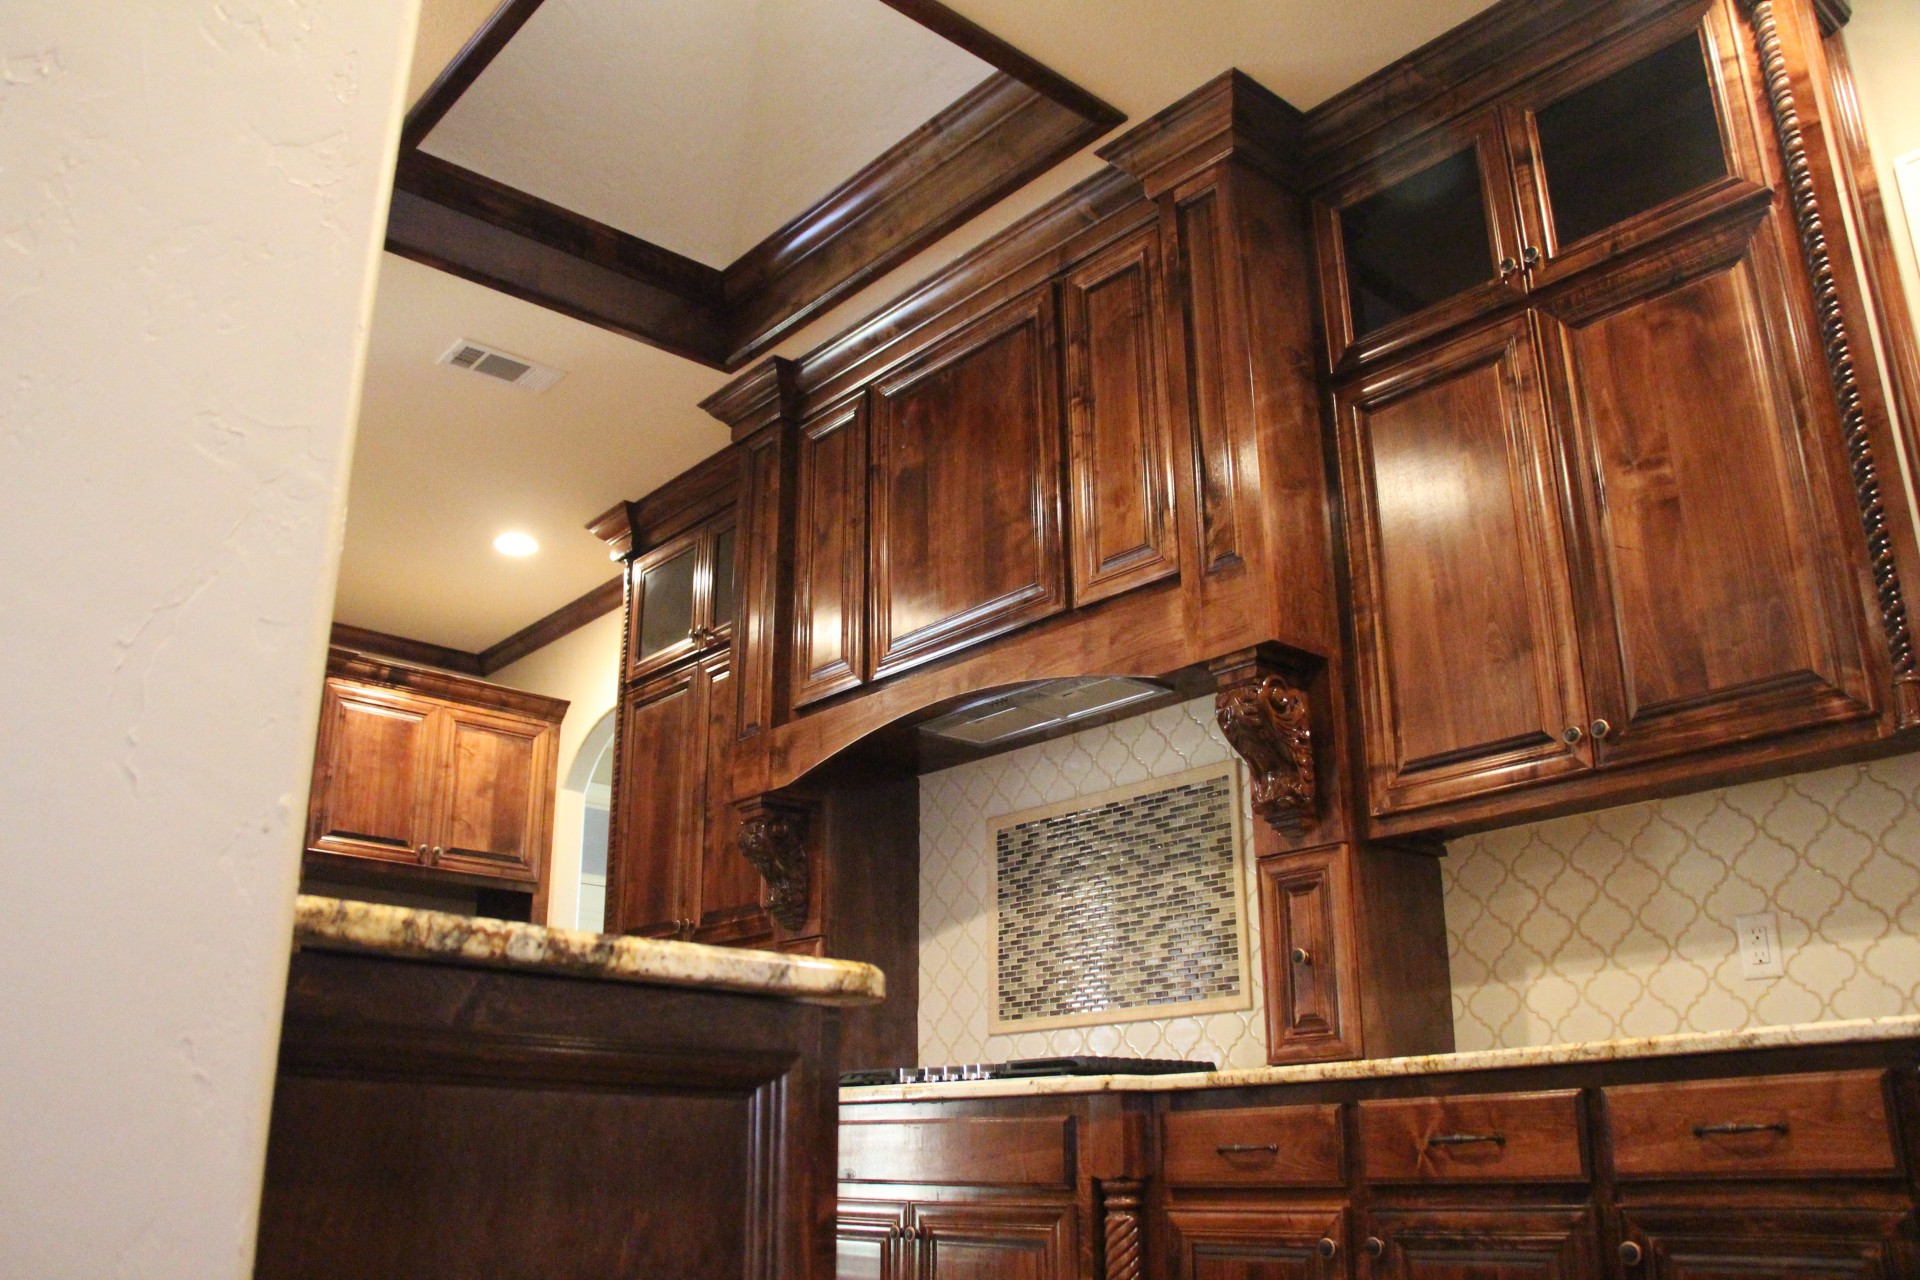 Kitchen Cabinets and Skylight